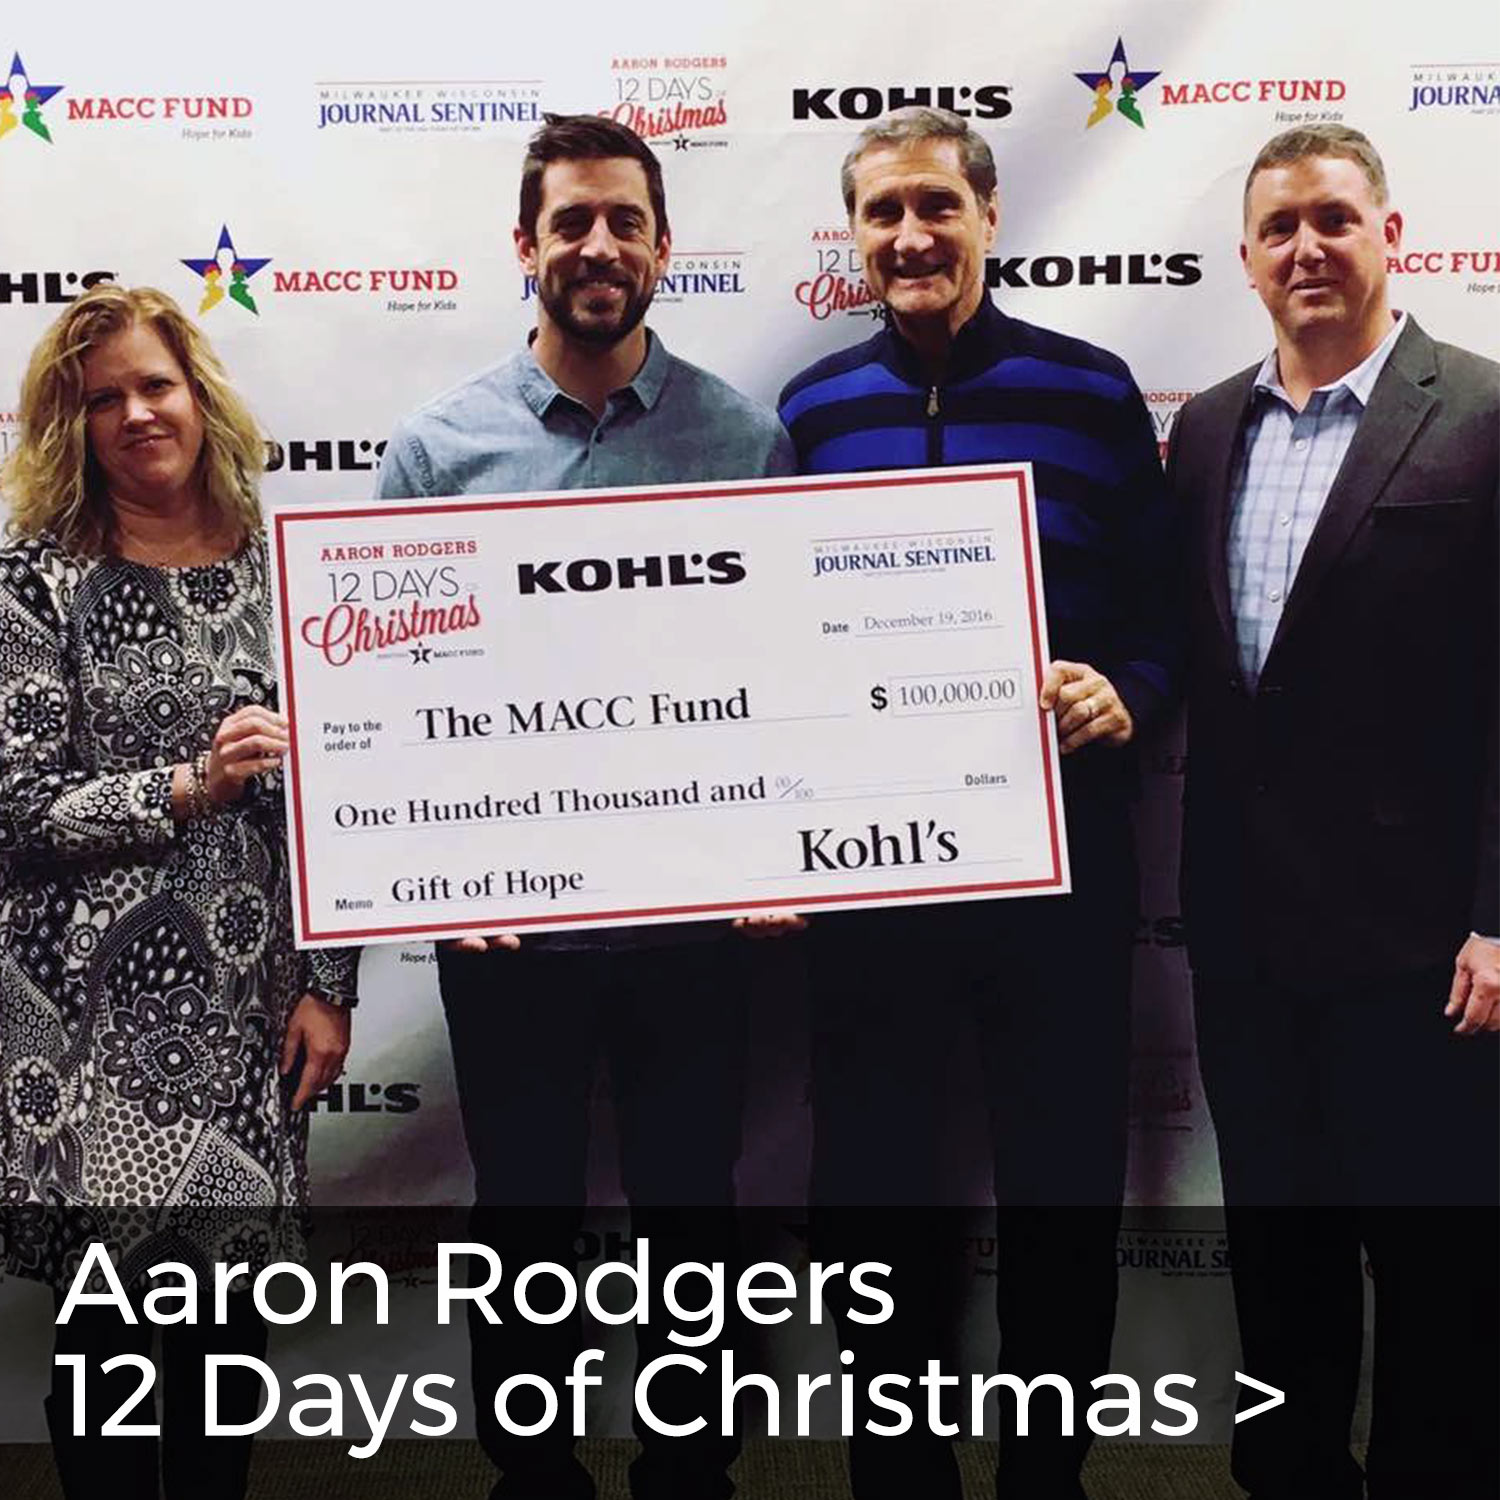 Aaron Rodgers - 12 Days Of Christmas